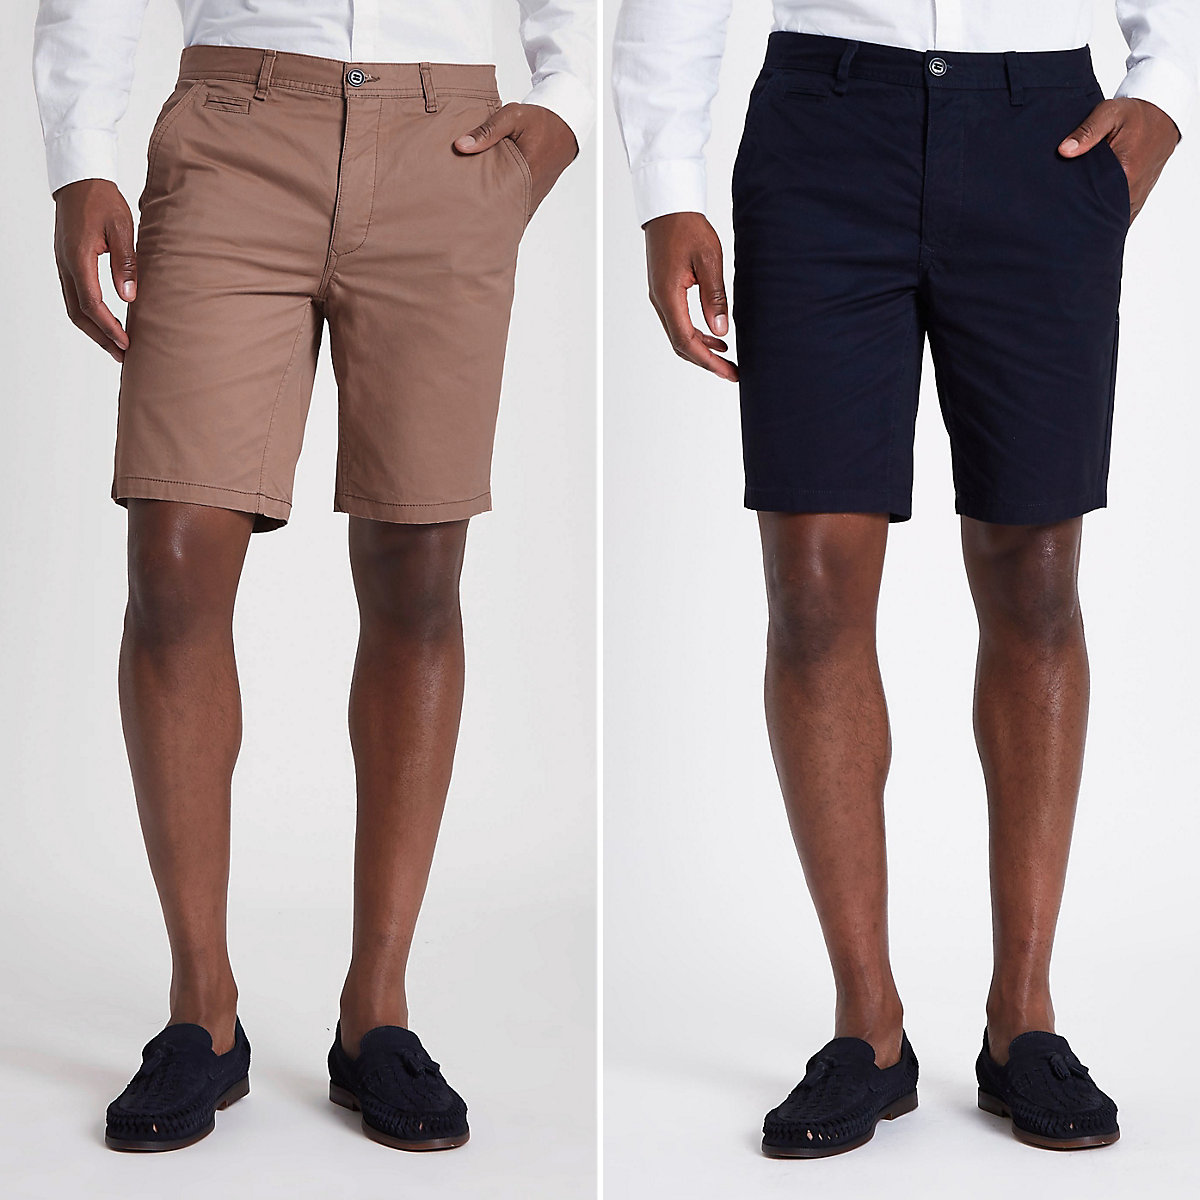 Navy and tan slim fit chino shorts 2 pack